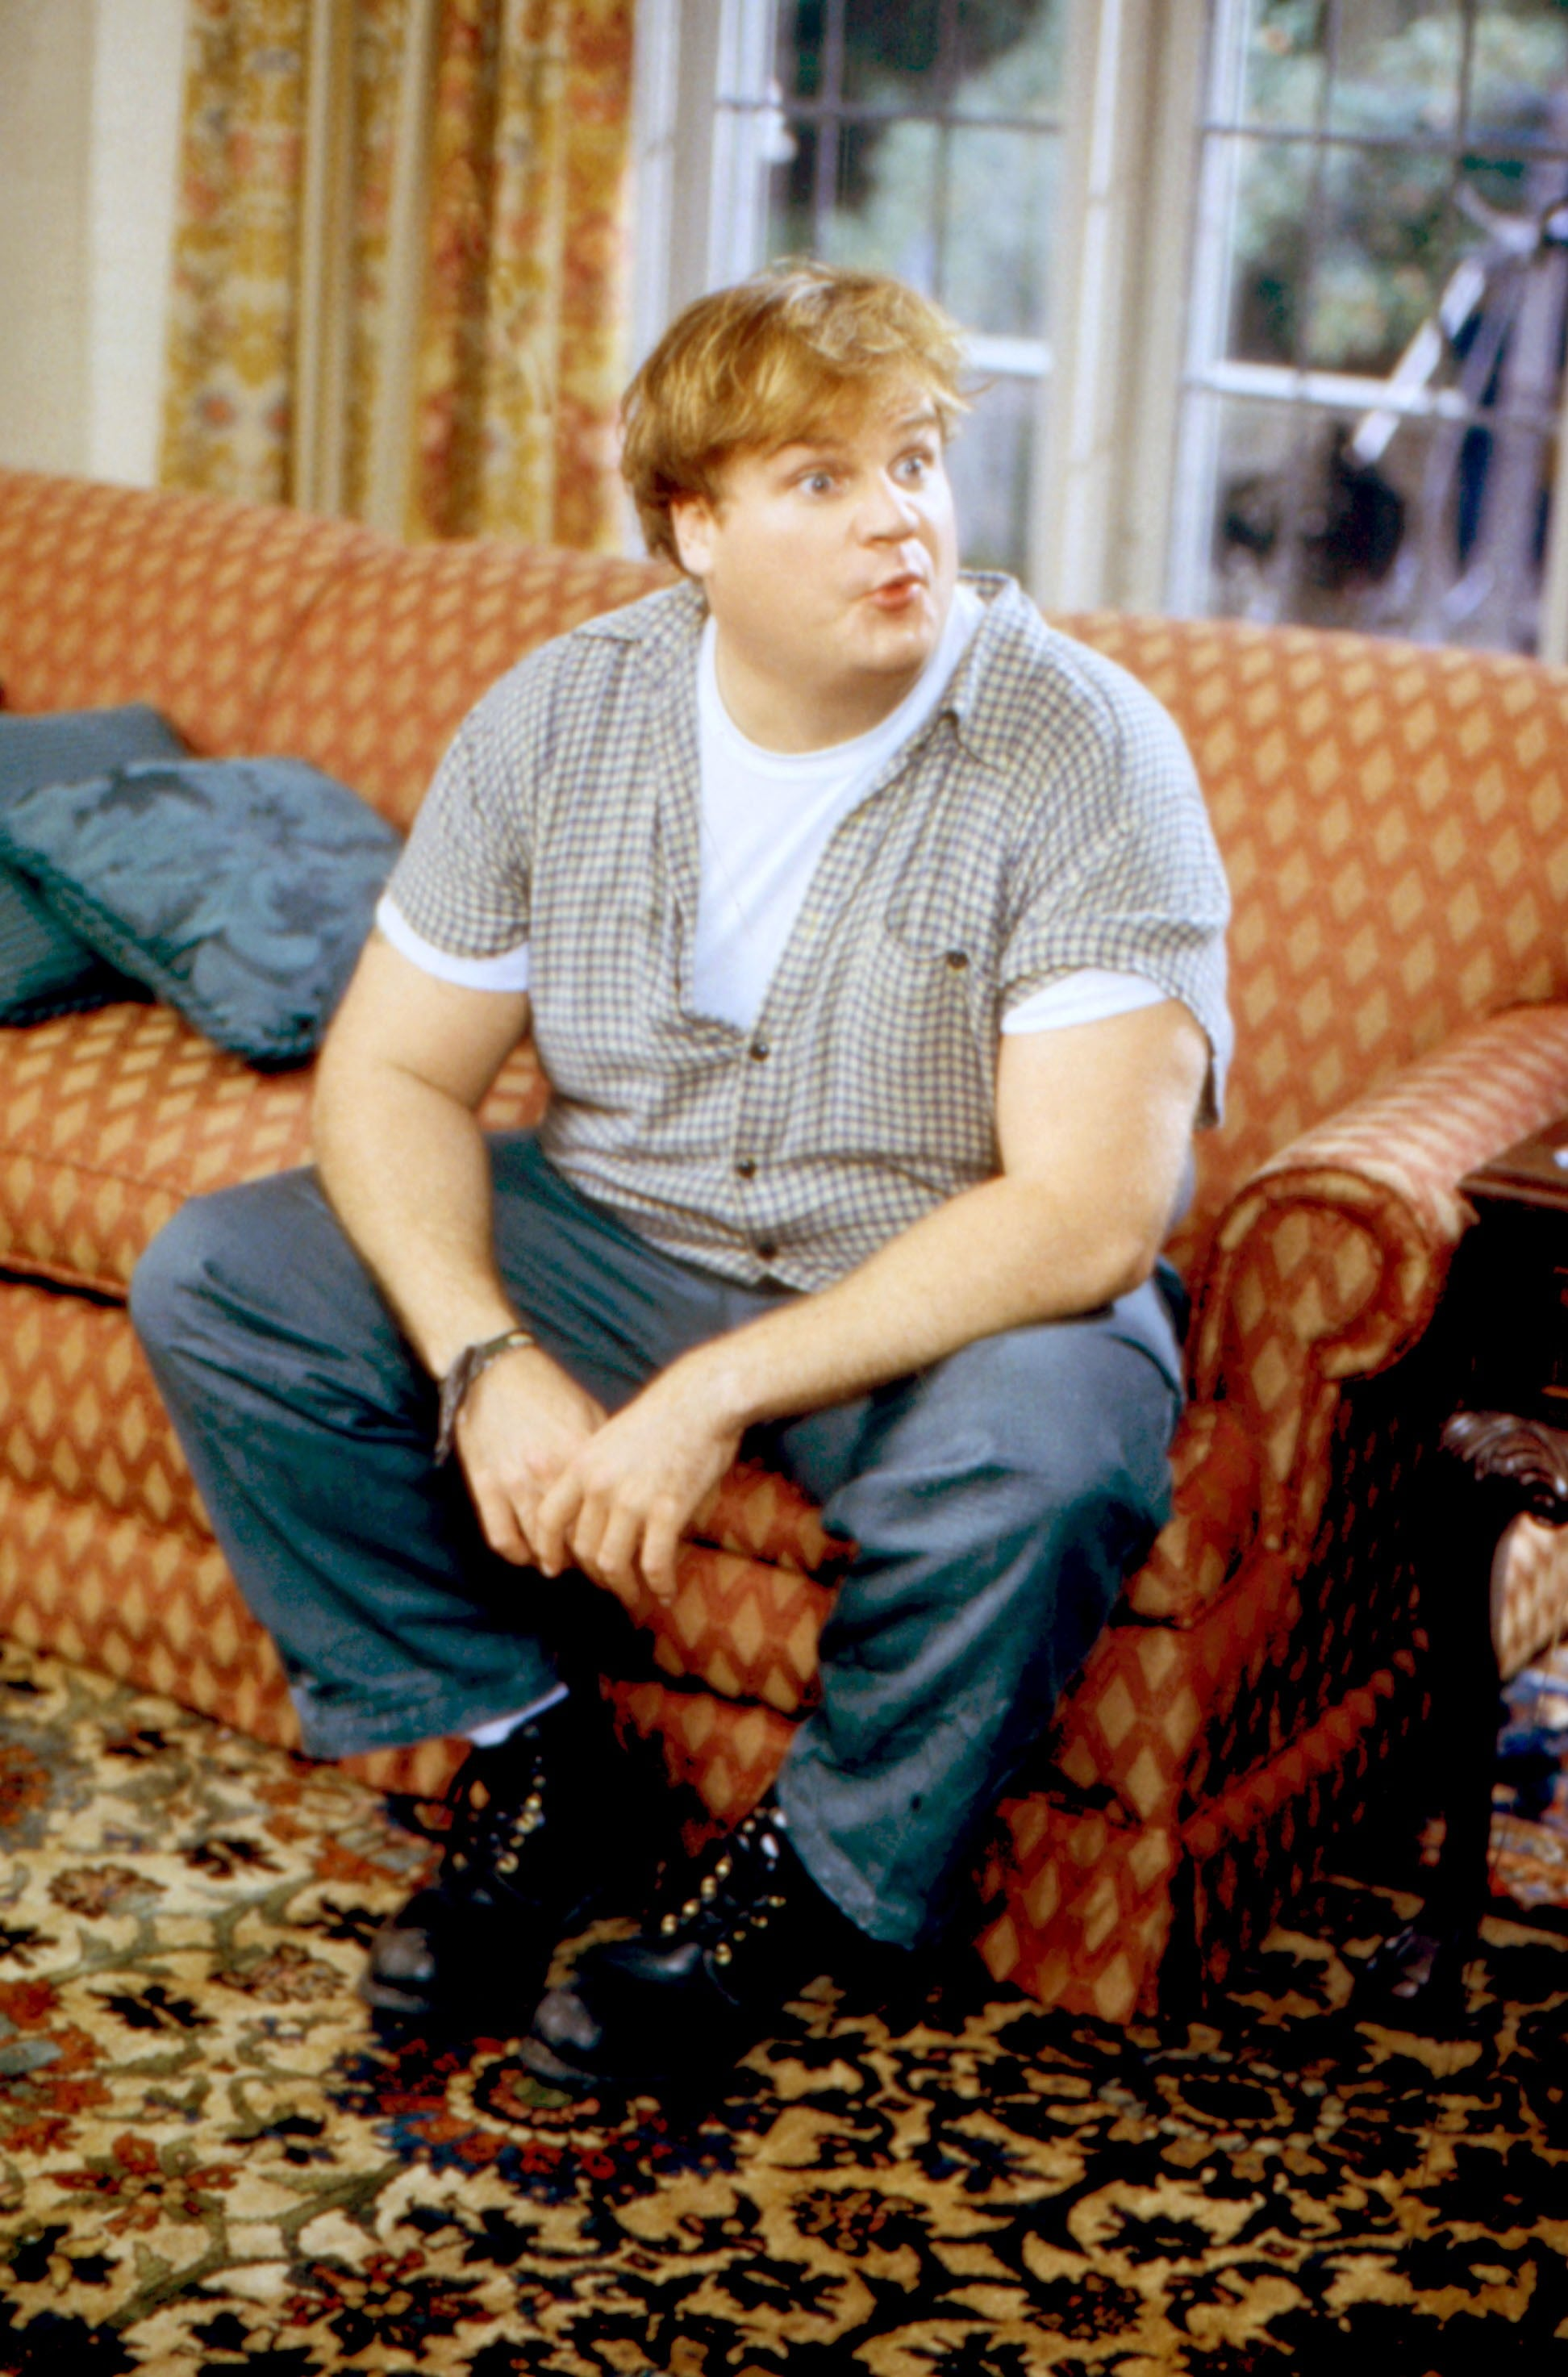 Photos: Commemorating the life and career of Chris Farley ...